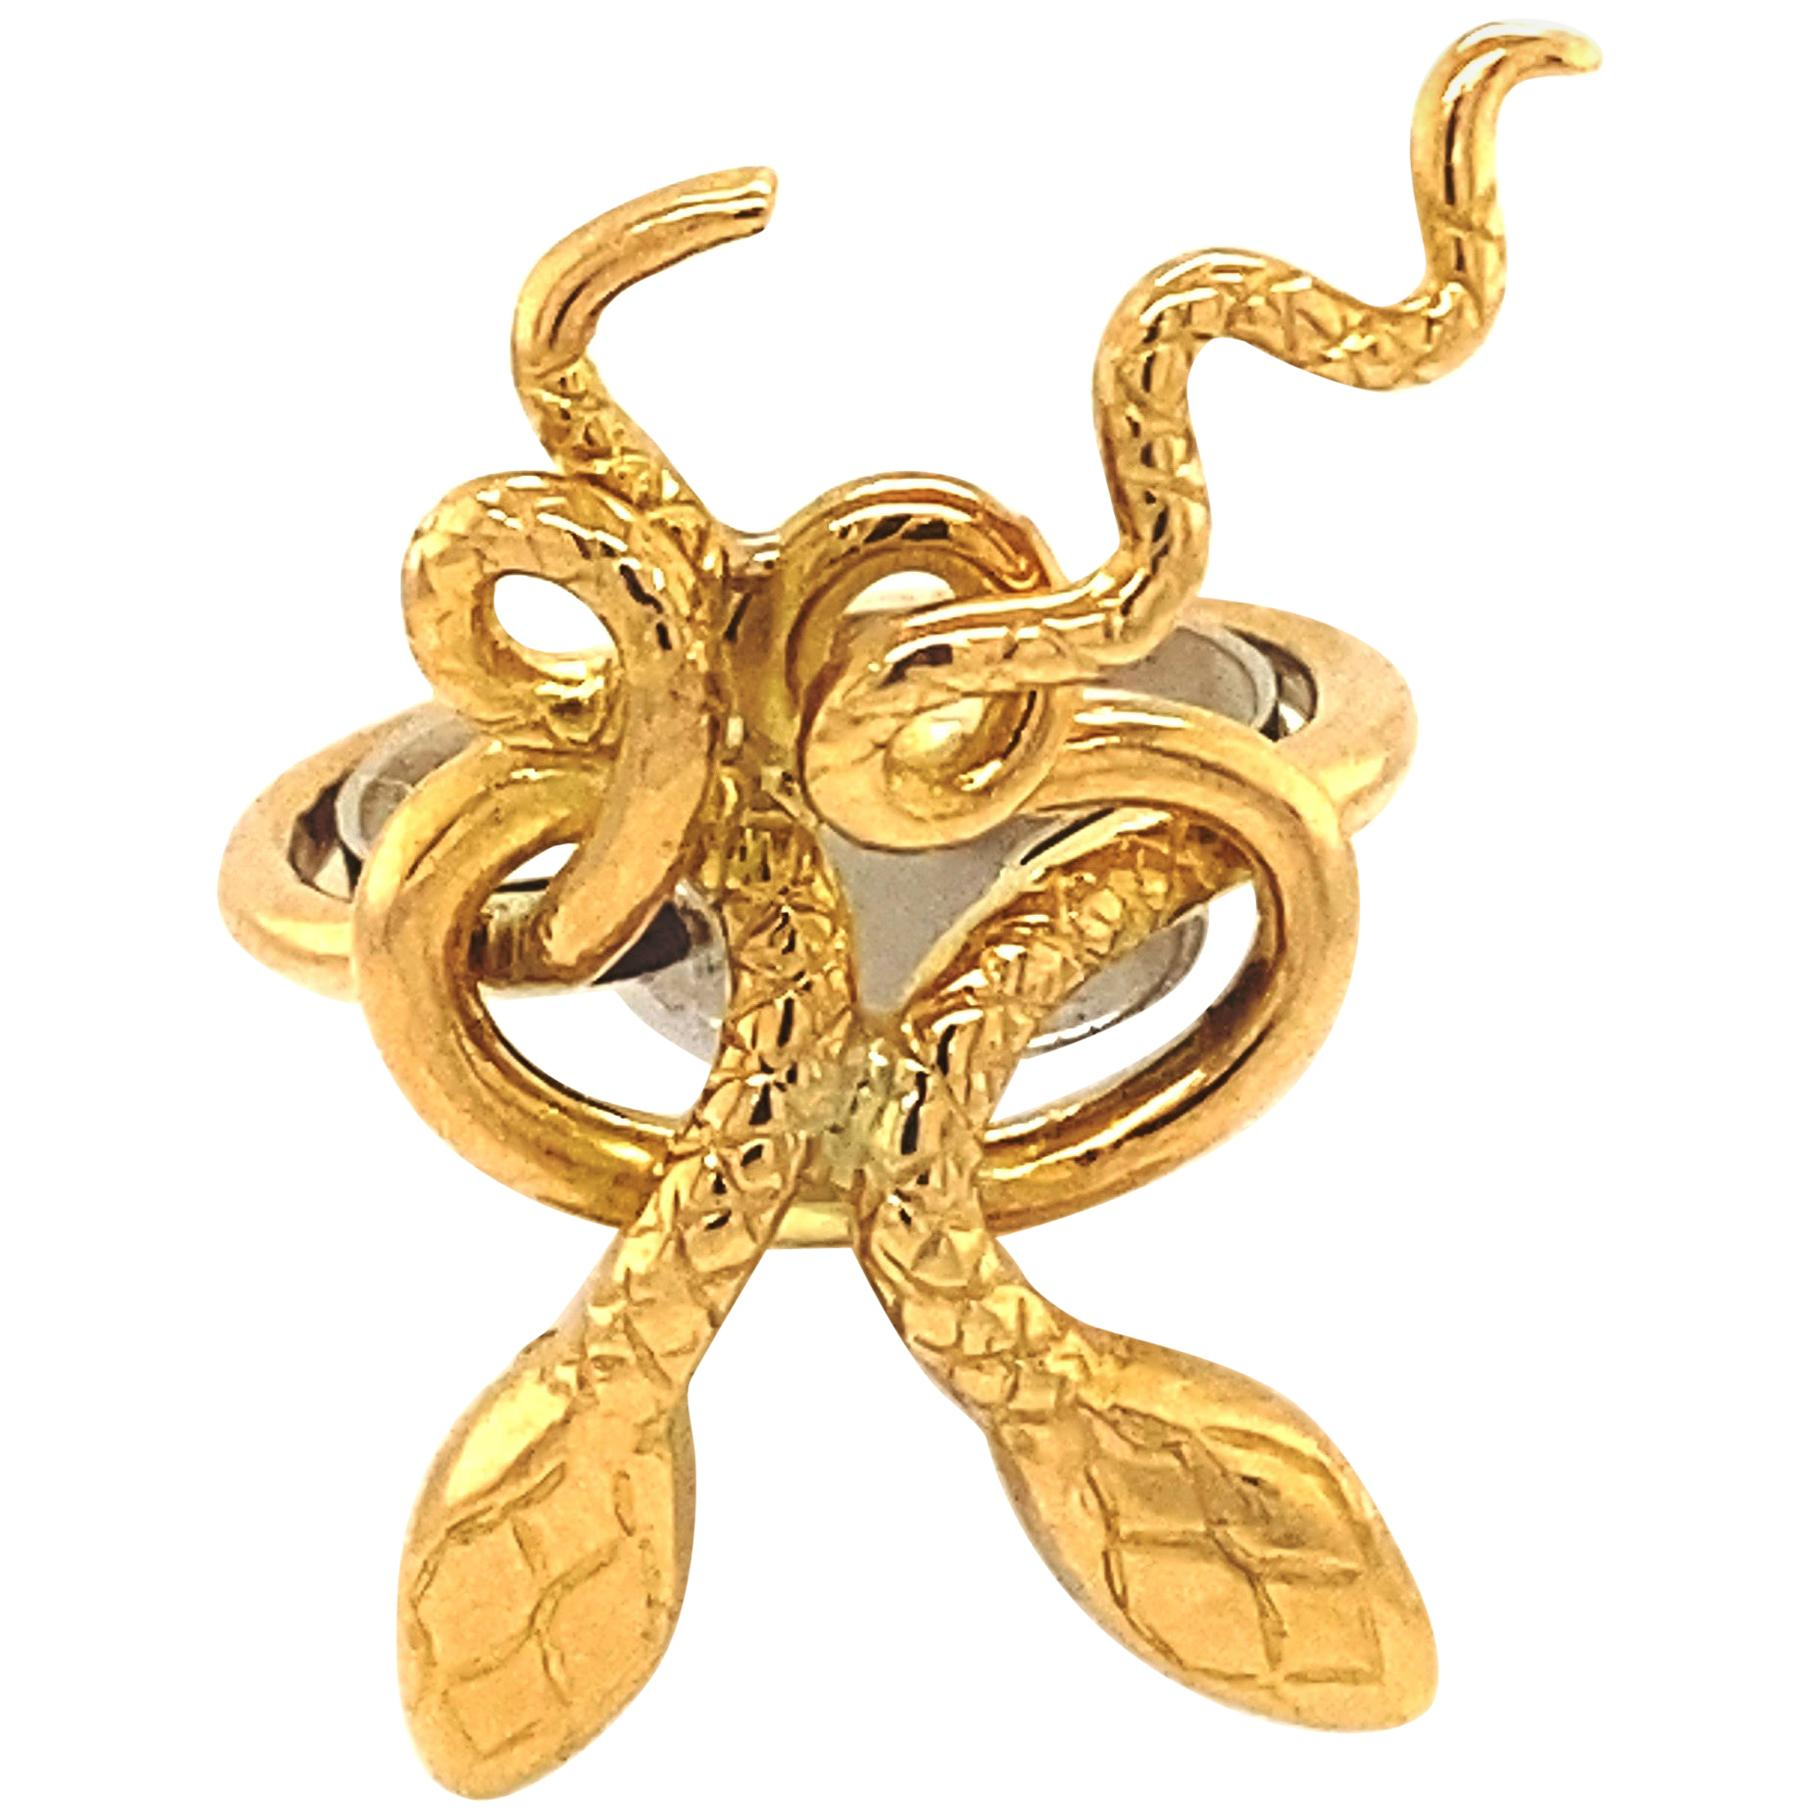 Ilias Lalaounis Greece Double Snake 18k Yellow Gold Ring